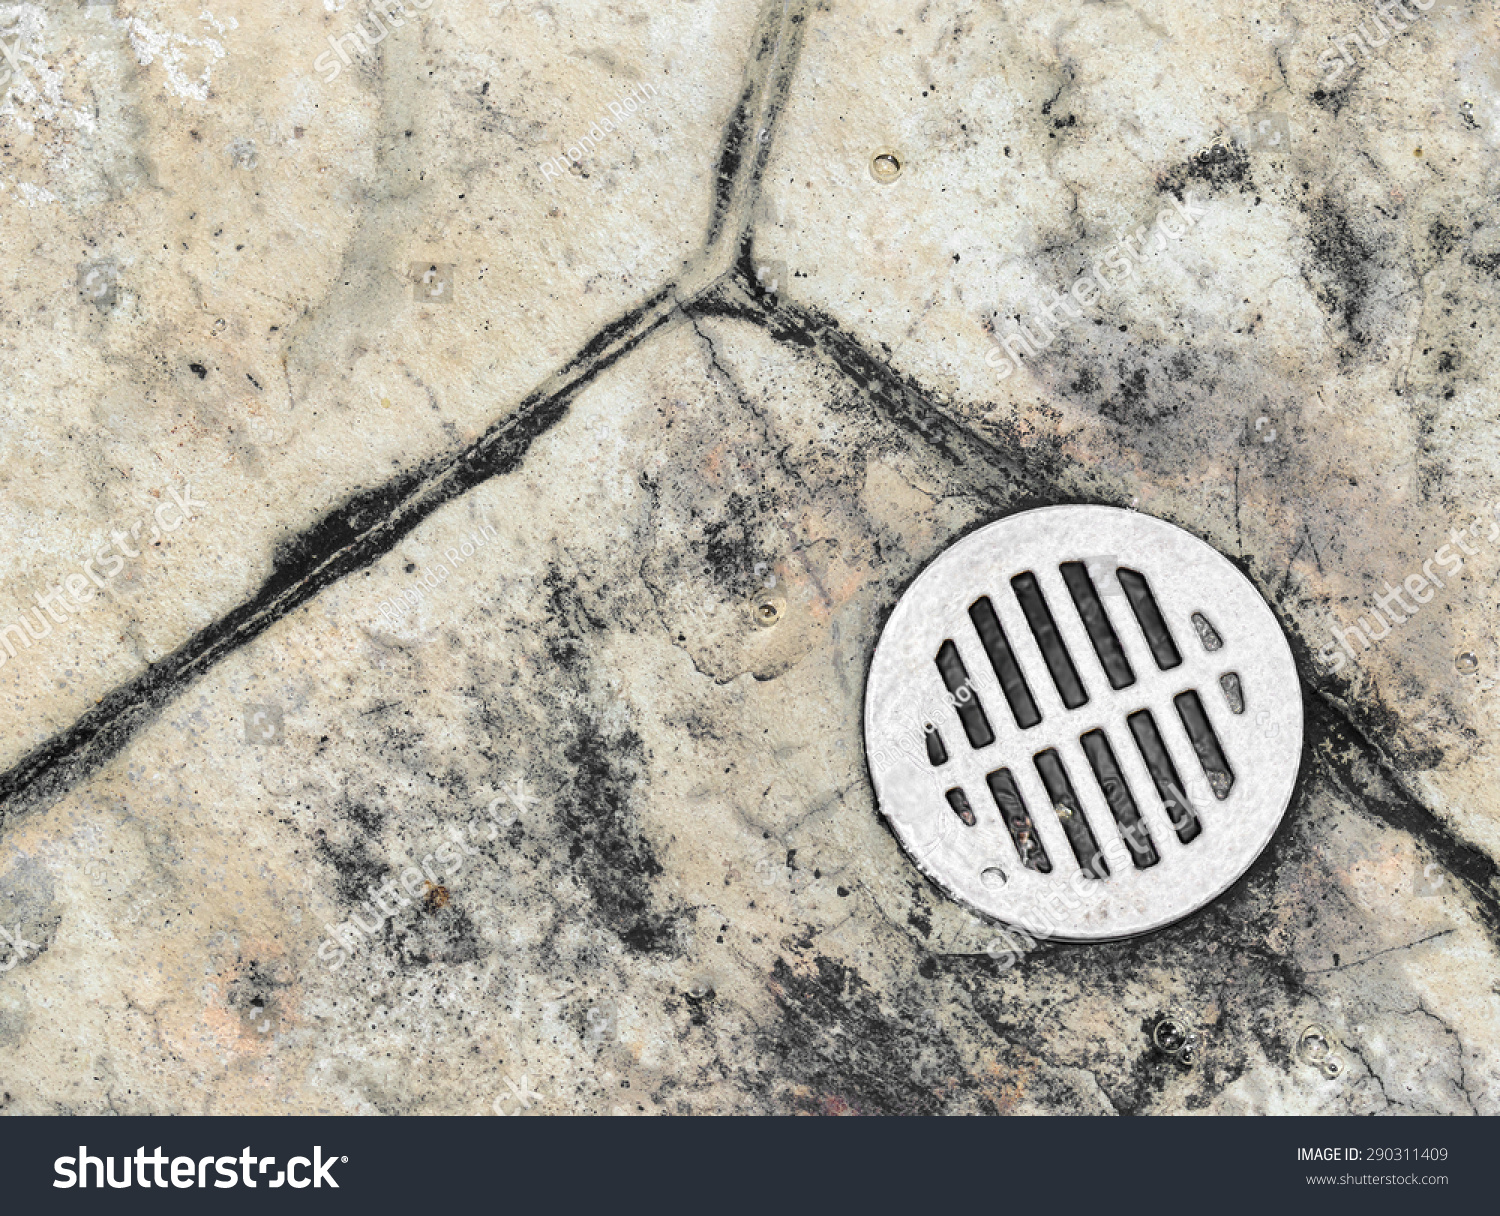 Wet outdoor tile floor drain hole stock photo 290311409 shutterstock wet outdoor tile floor drain hole close up water draining down a metal drain cover dailygadgetfo Images